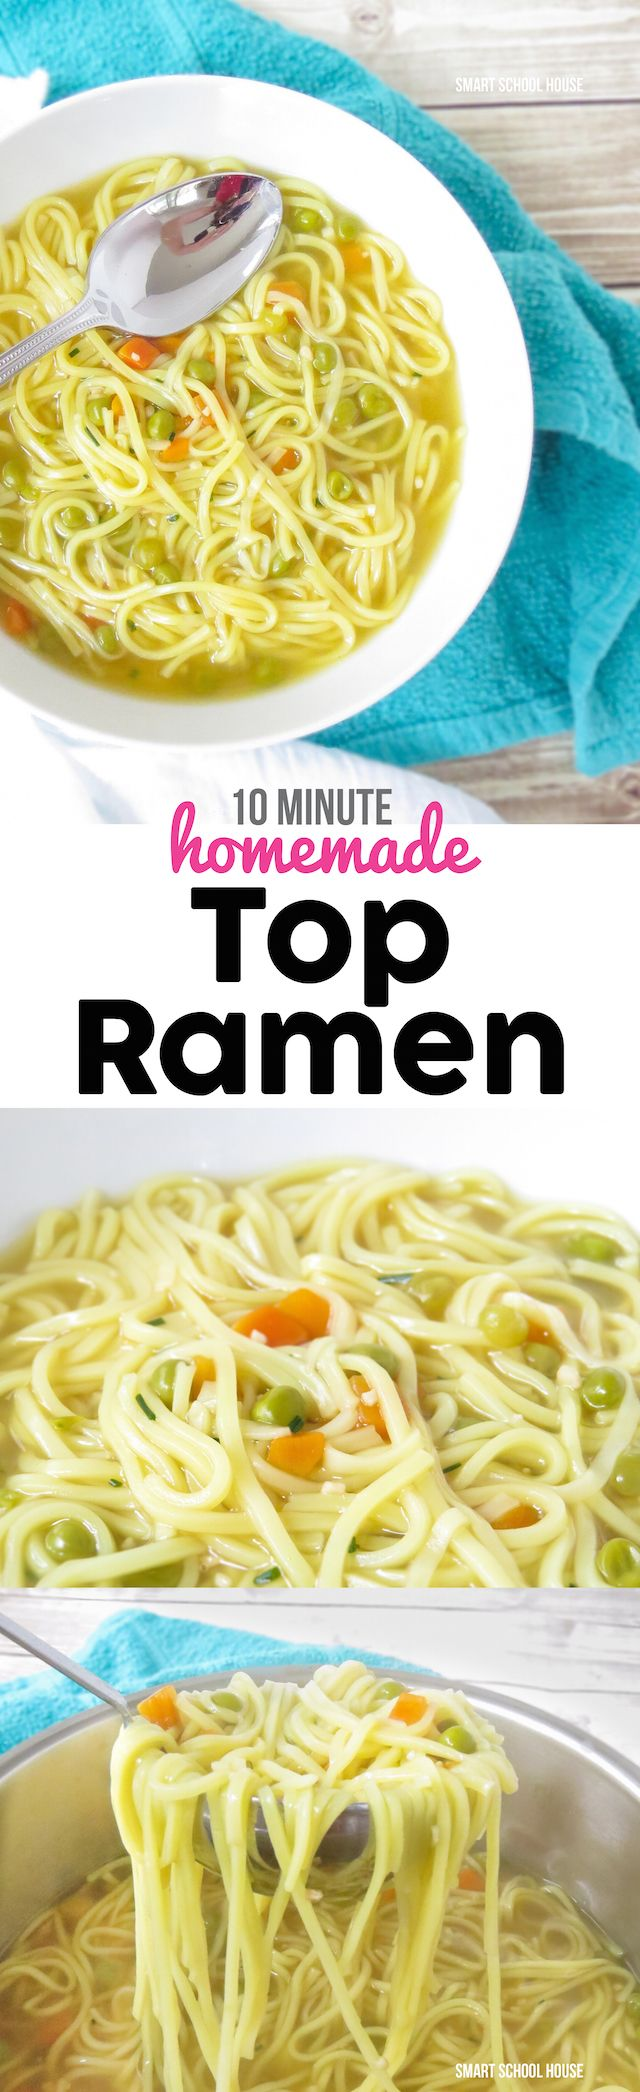 10 minute Homemade Top Ramen soup recipe - I had no idea it was this EASY to make! I couldn't stop eating it......: